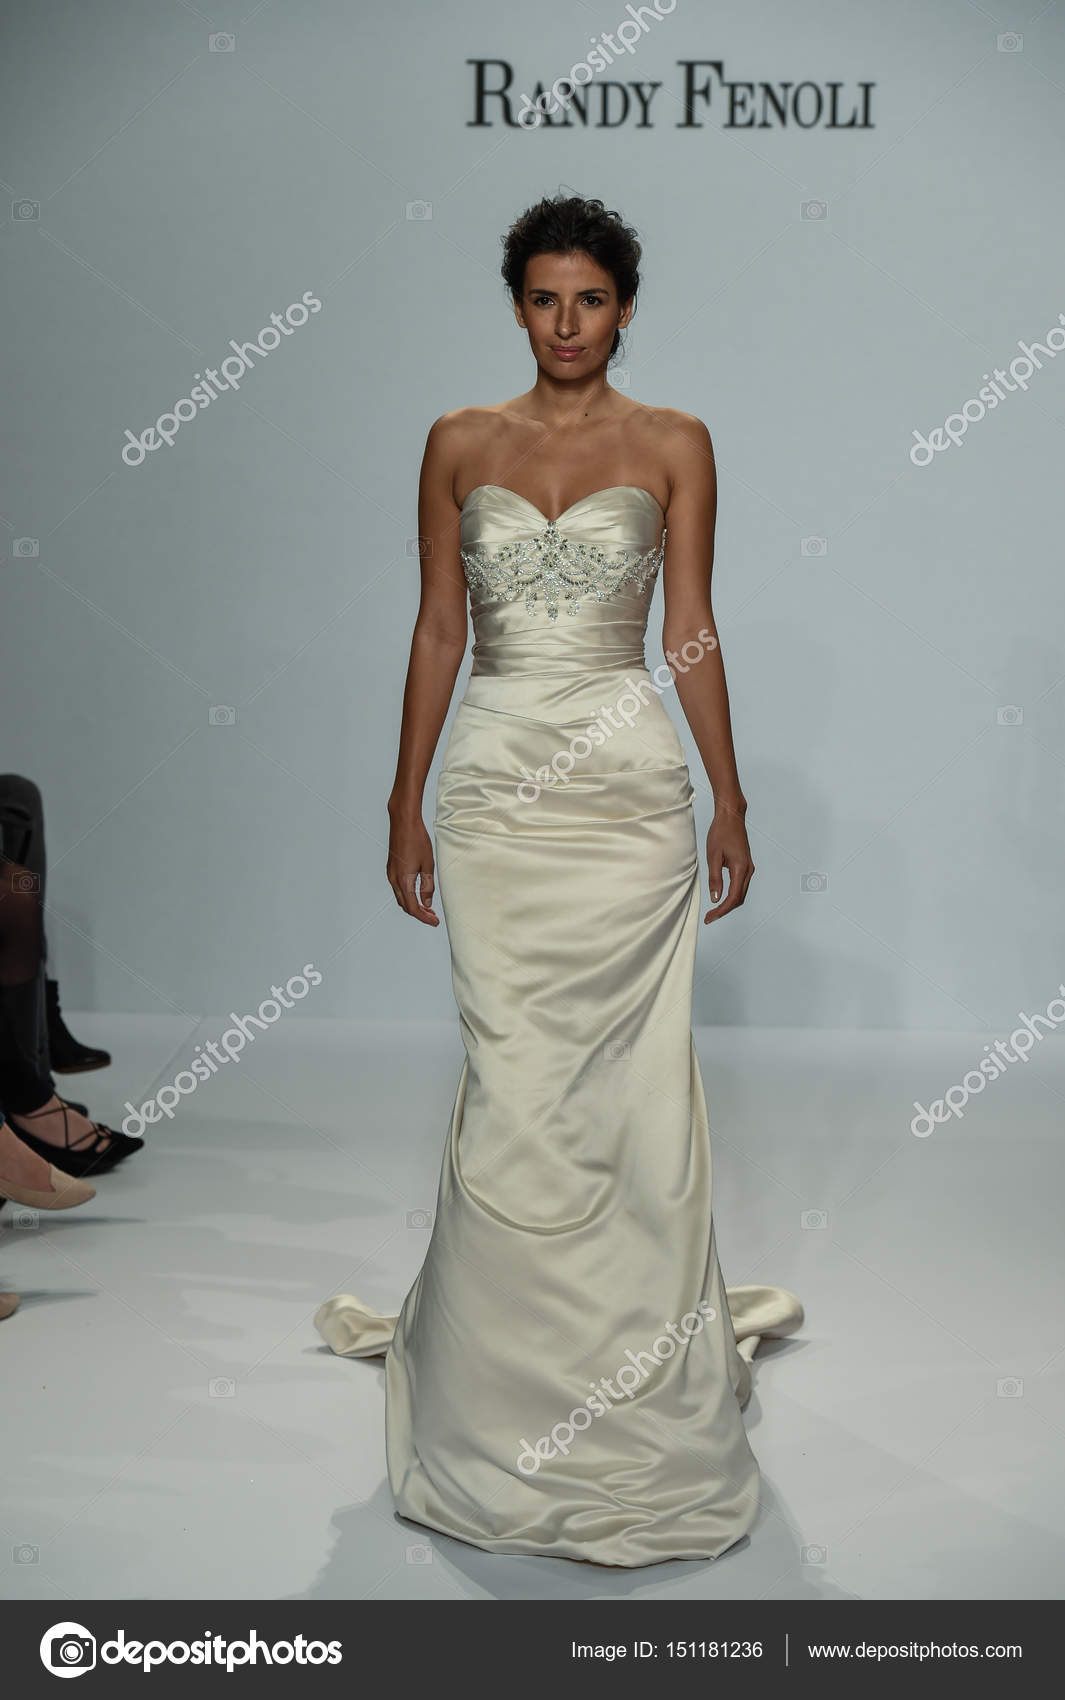 Randy Fenoli Bridal show – Stock Editorial Photo © fashionstock ...